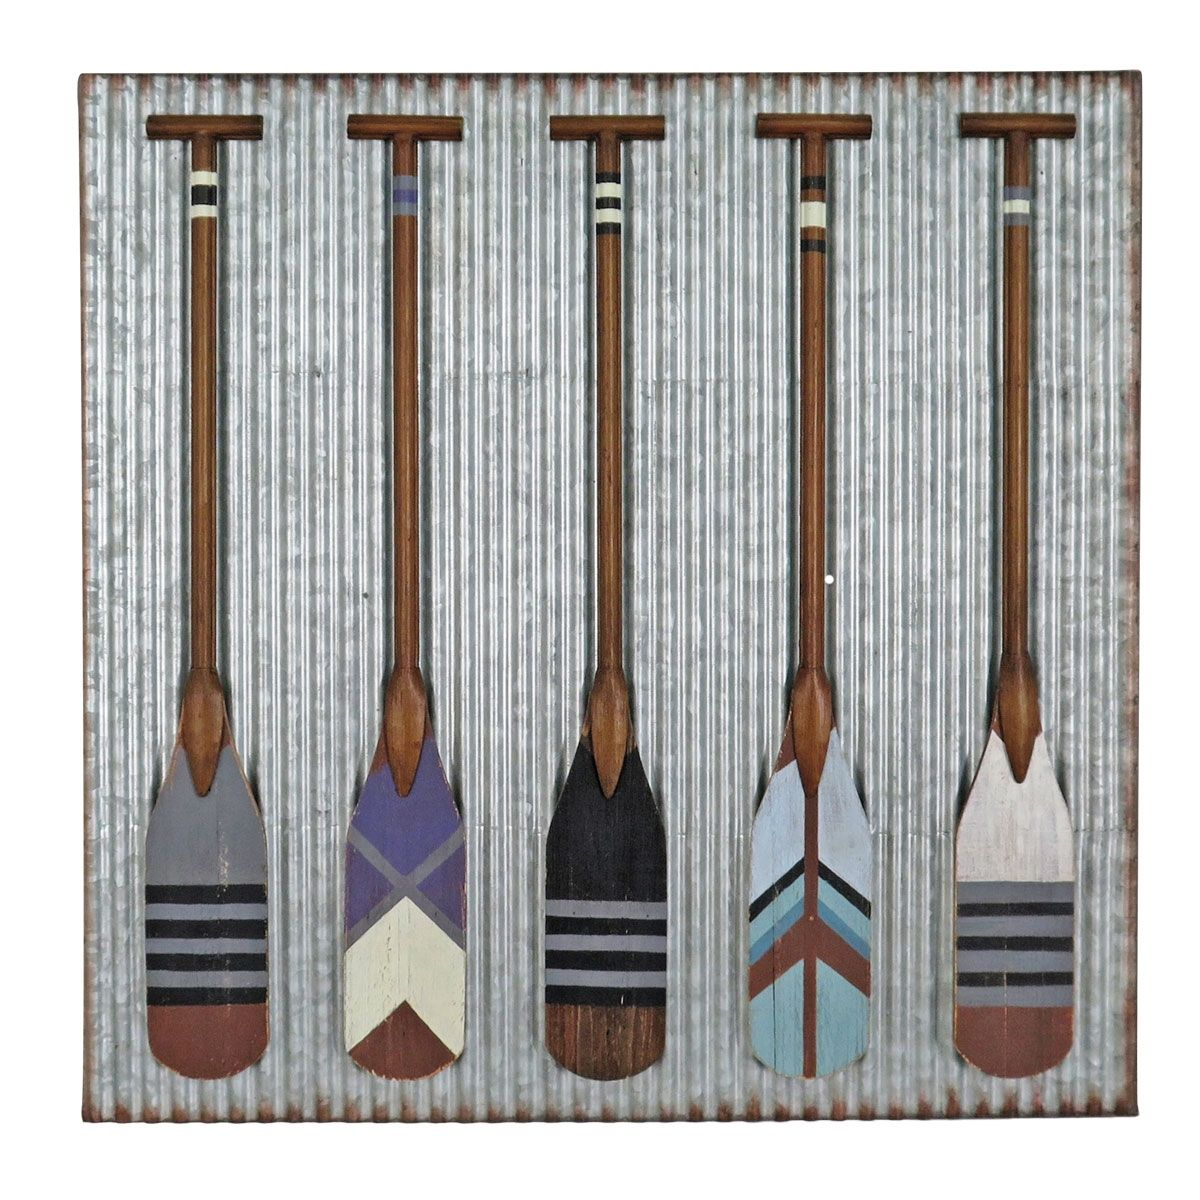 Corrugated Paddle Wall Art (With